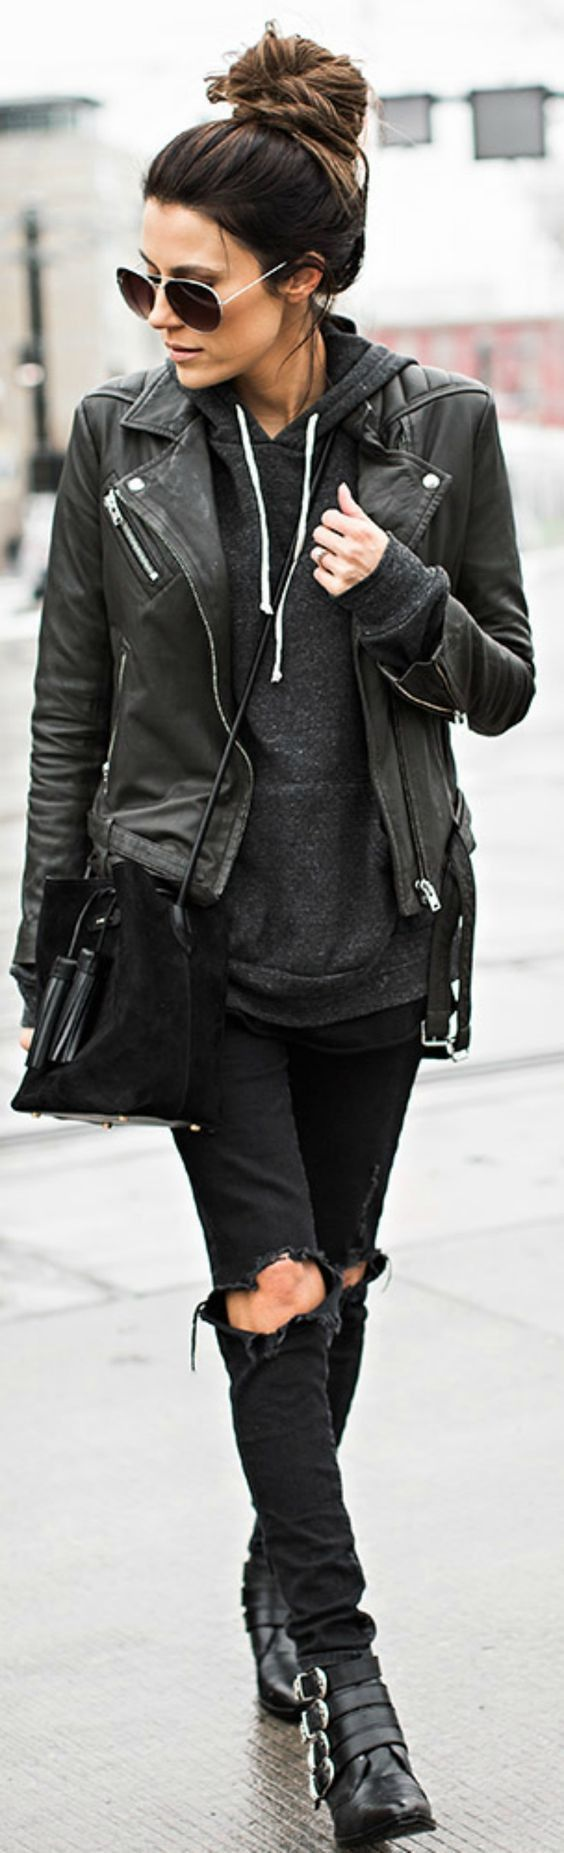 grunge look / leather jacket